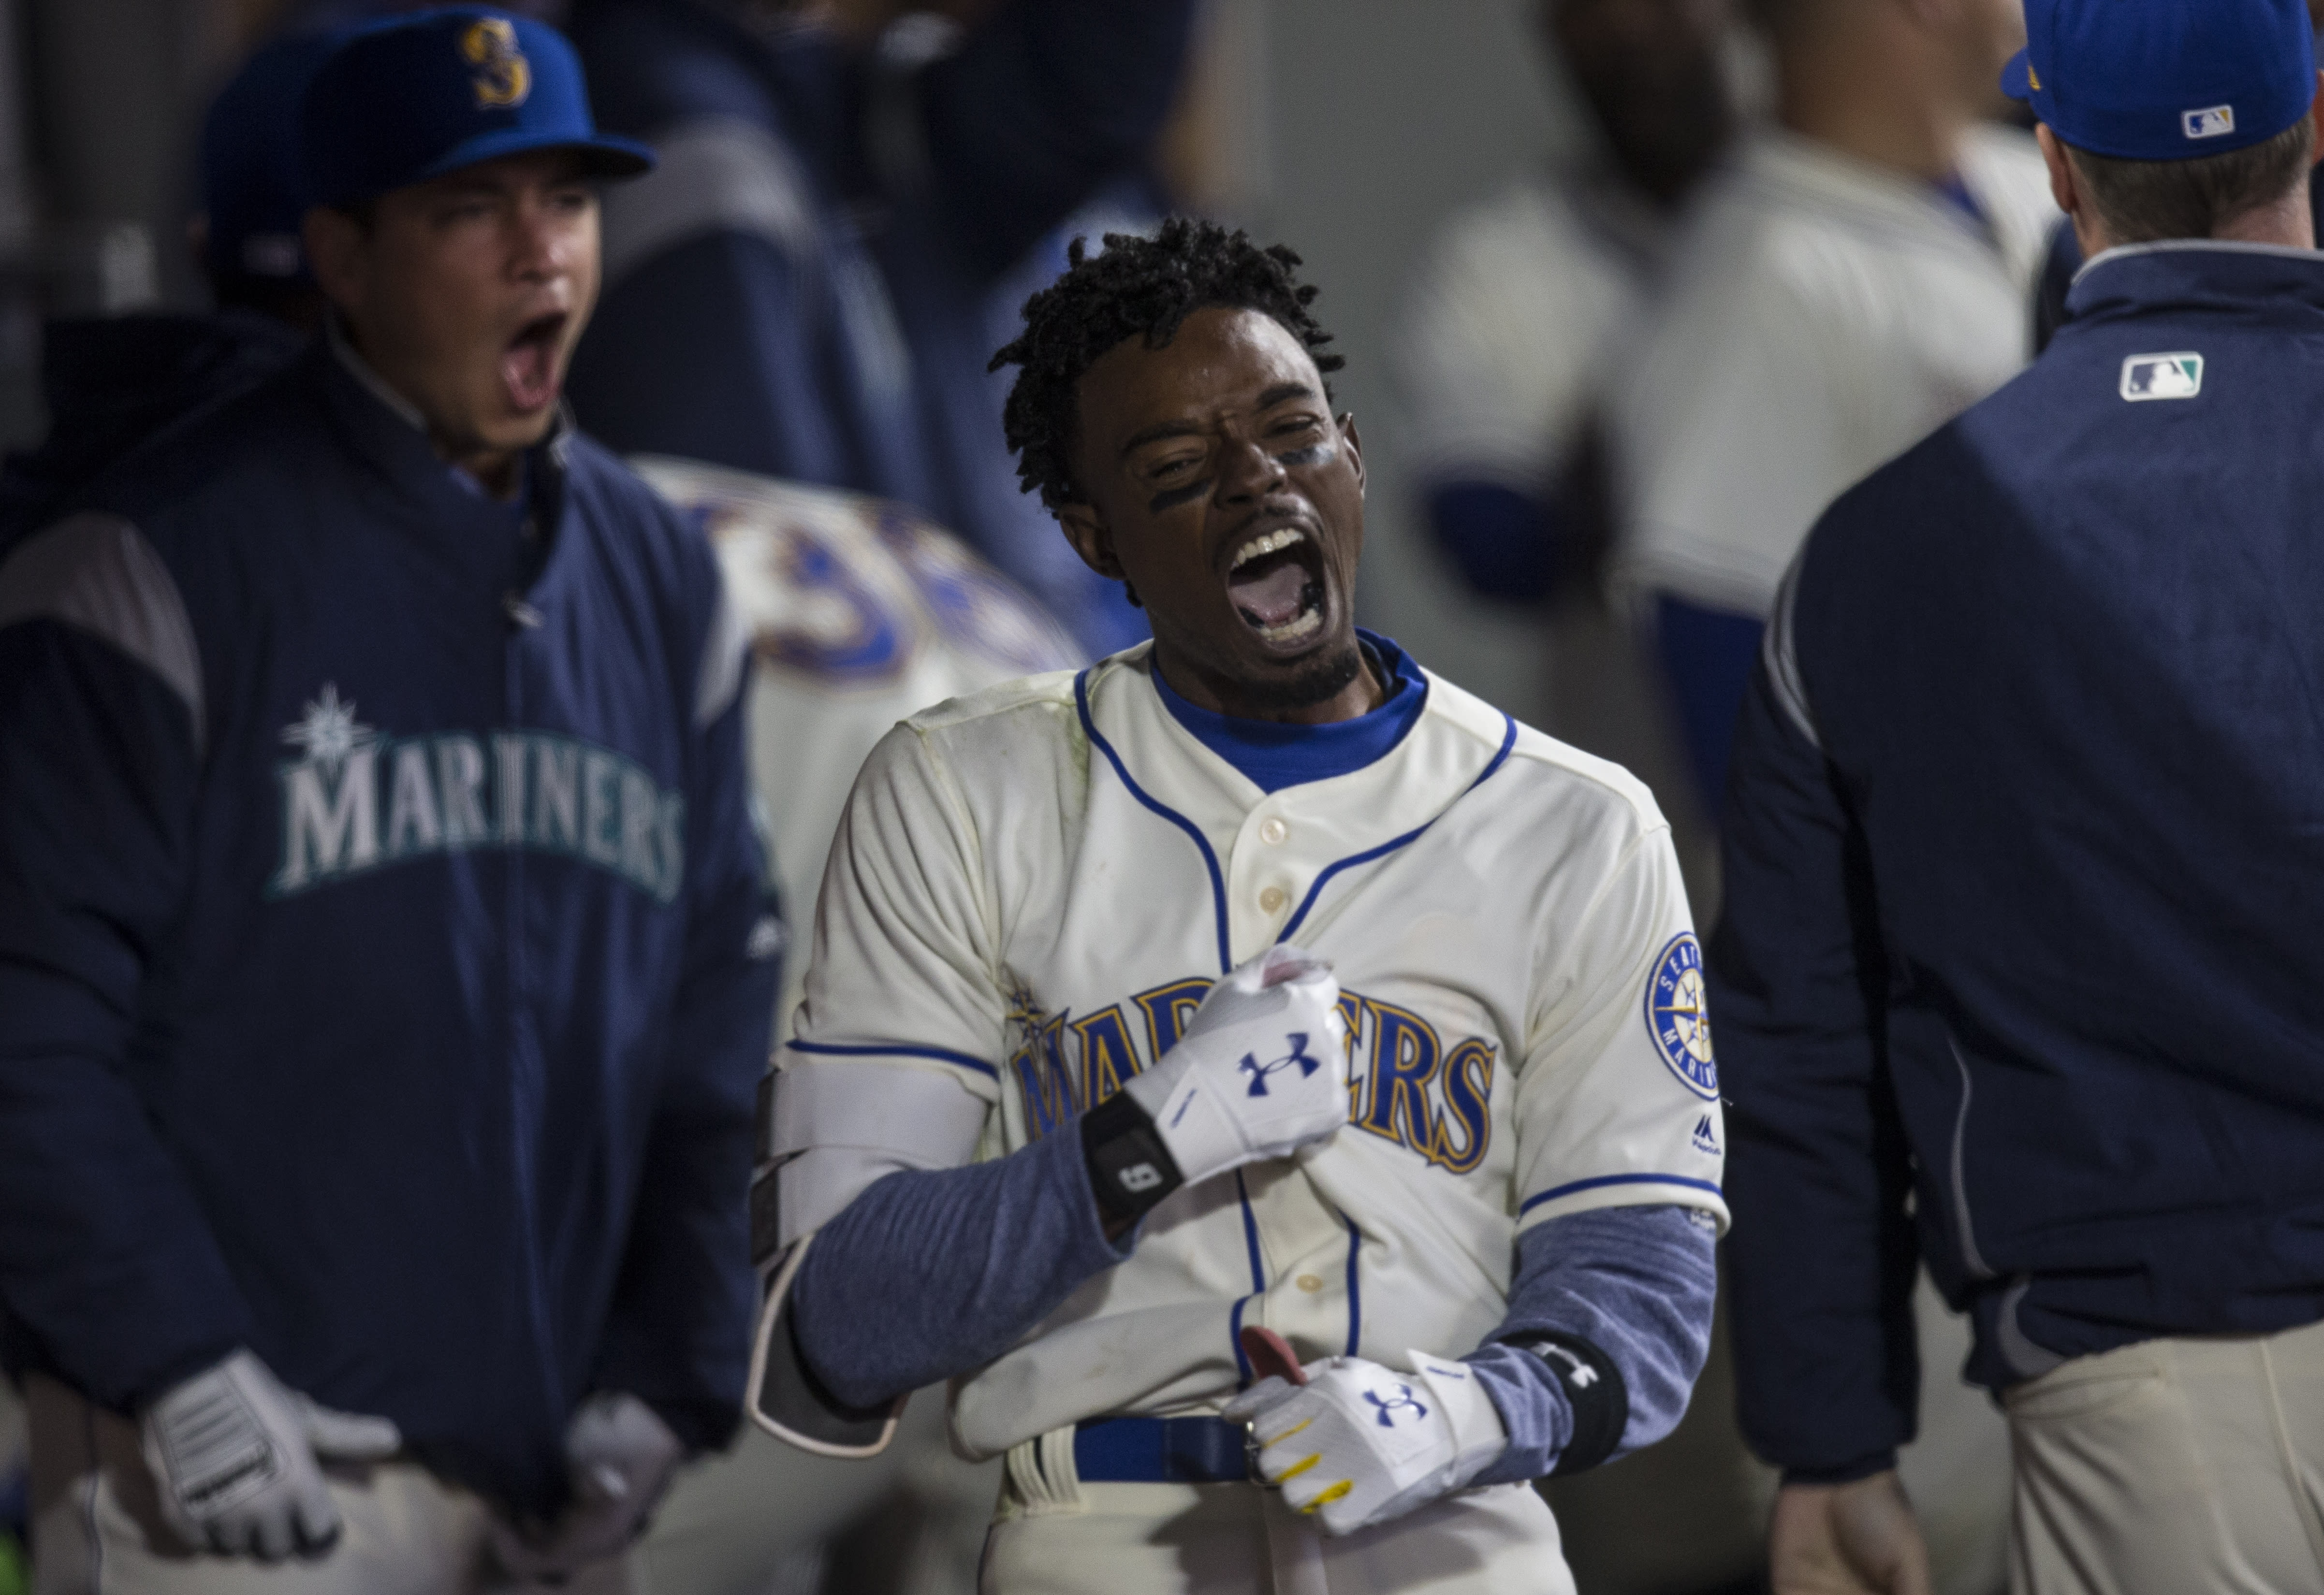 cheaper a3b66 b8114 Dee Gordon imitates Ken Griffey Jr. during first homer with ...